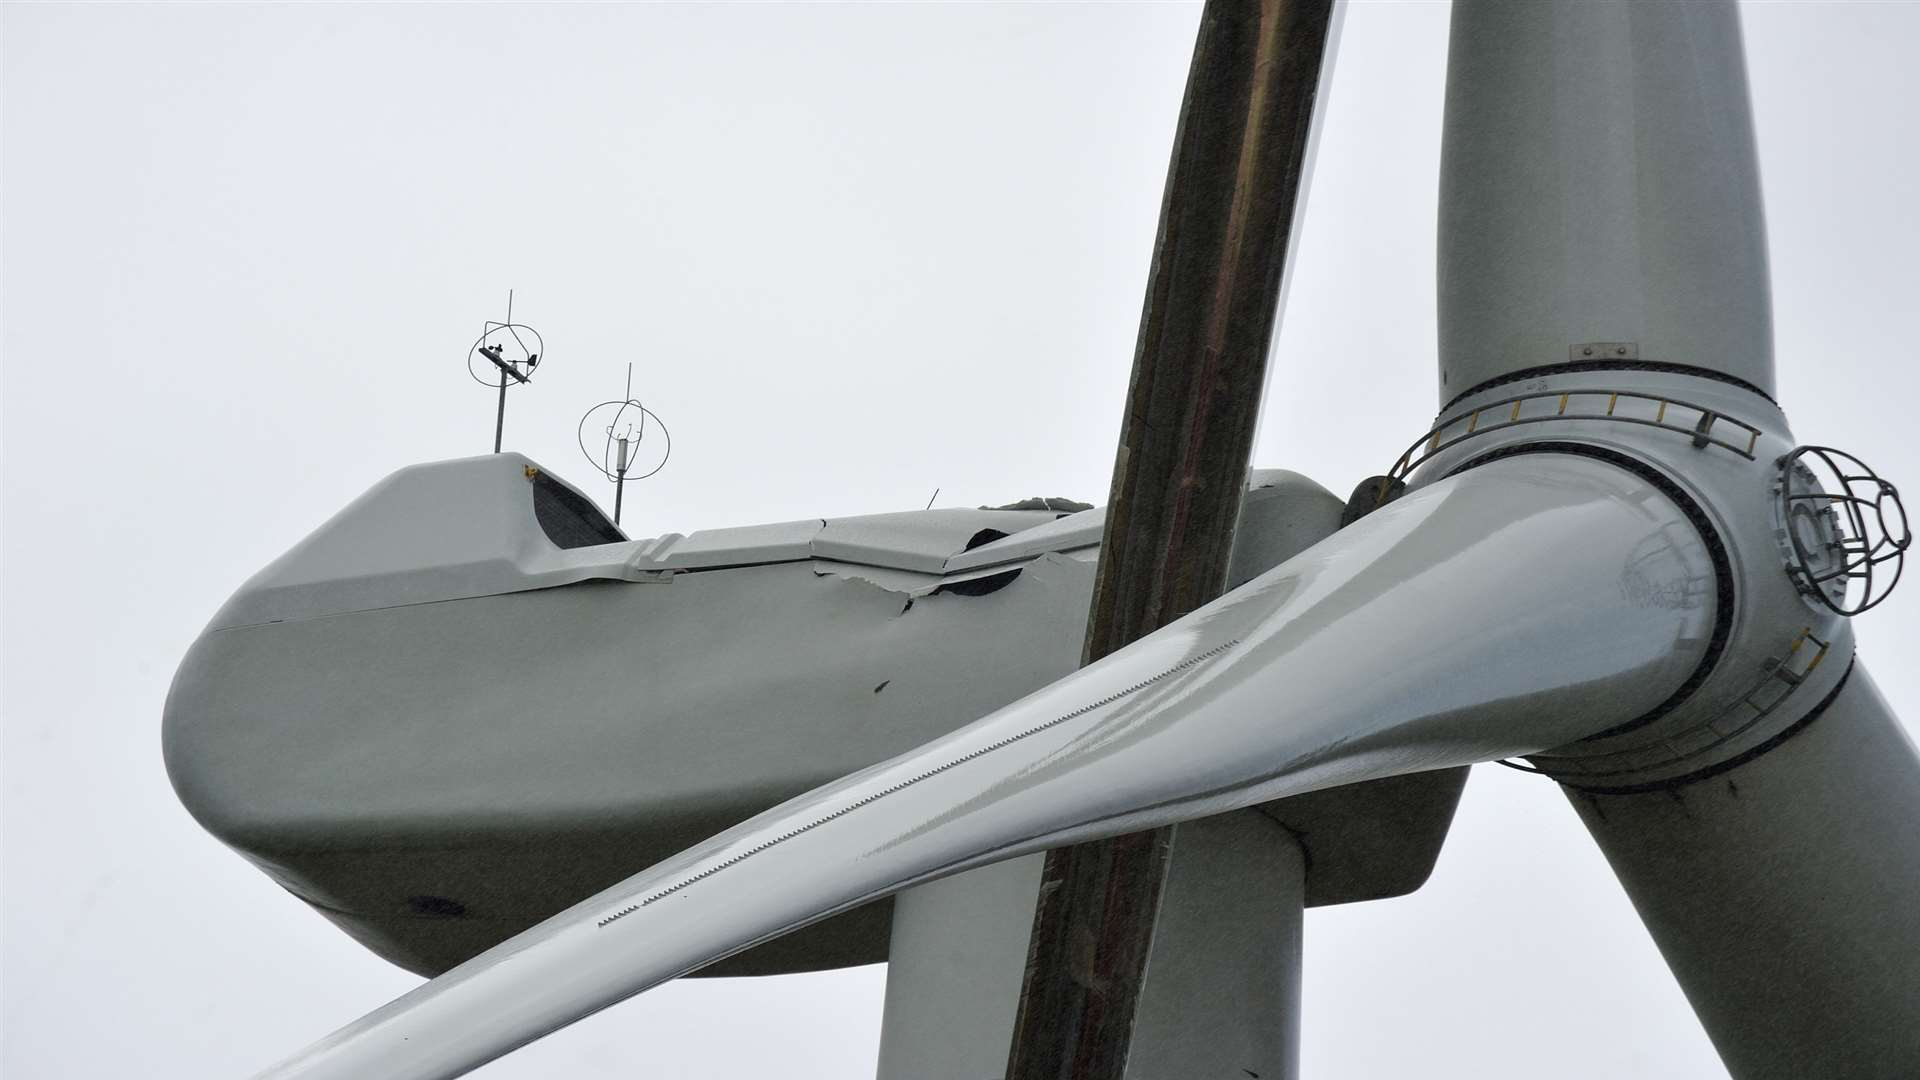 A dent can be seen in the turbine following the strike